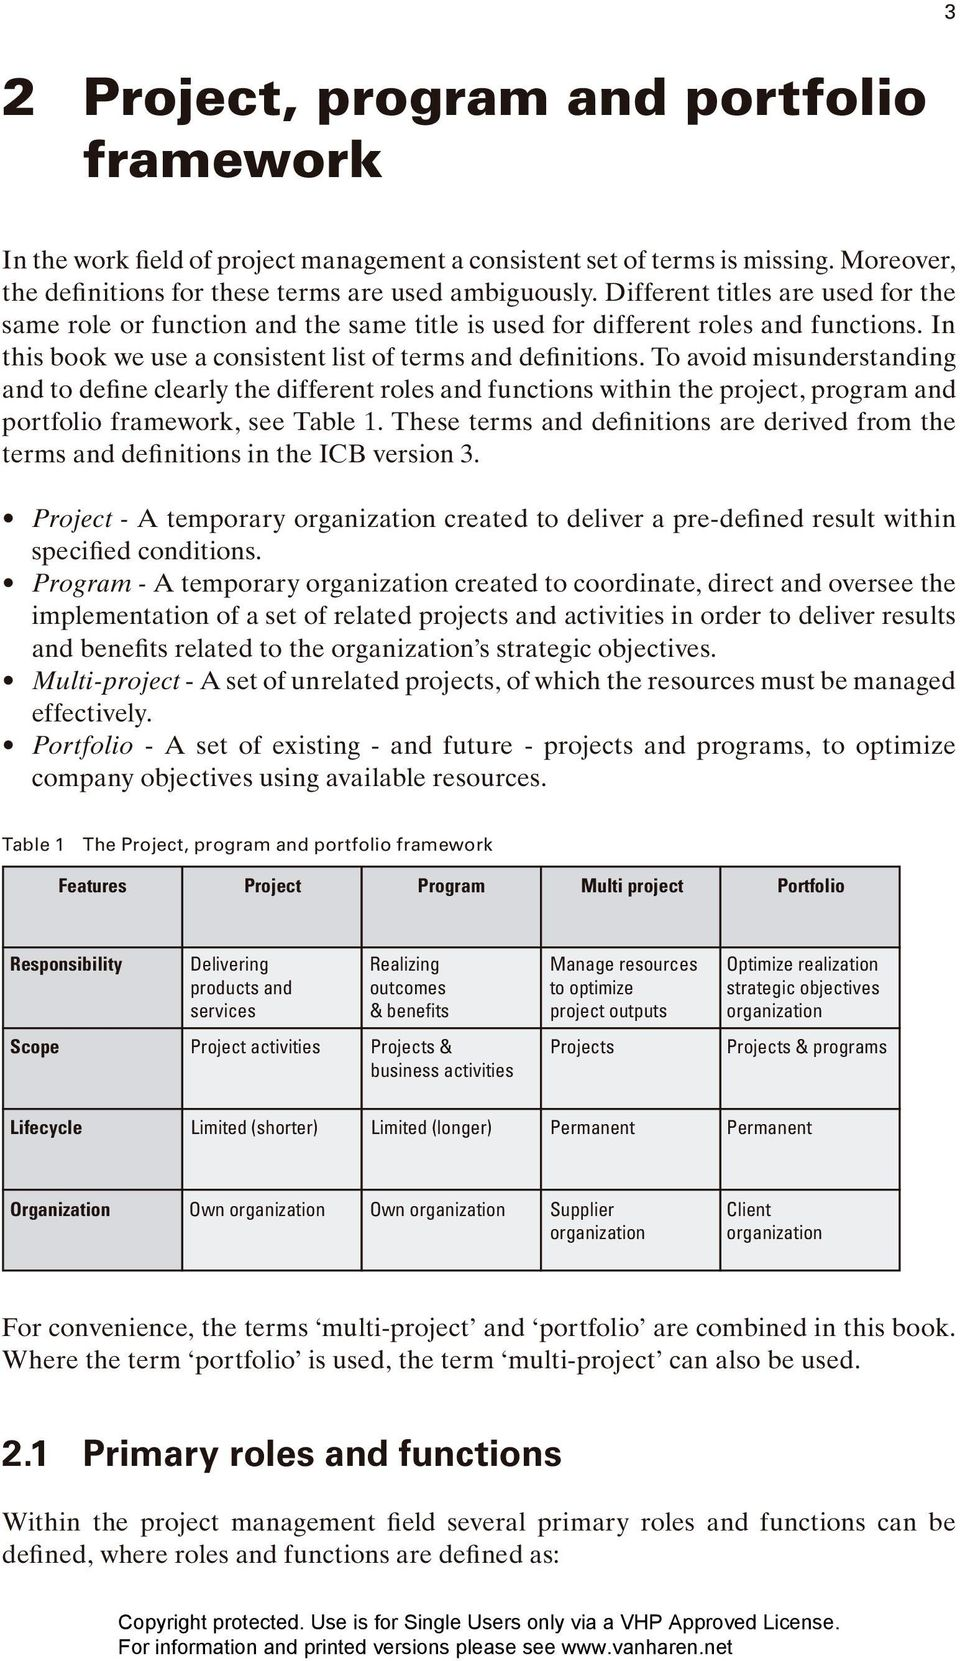 To avoid misunderstanding and to define clearly the different roles and functions within the project, program and portfolio framework, see Table 1.